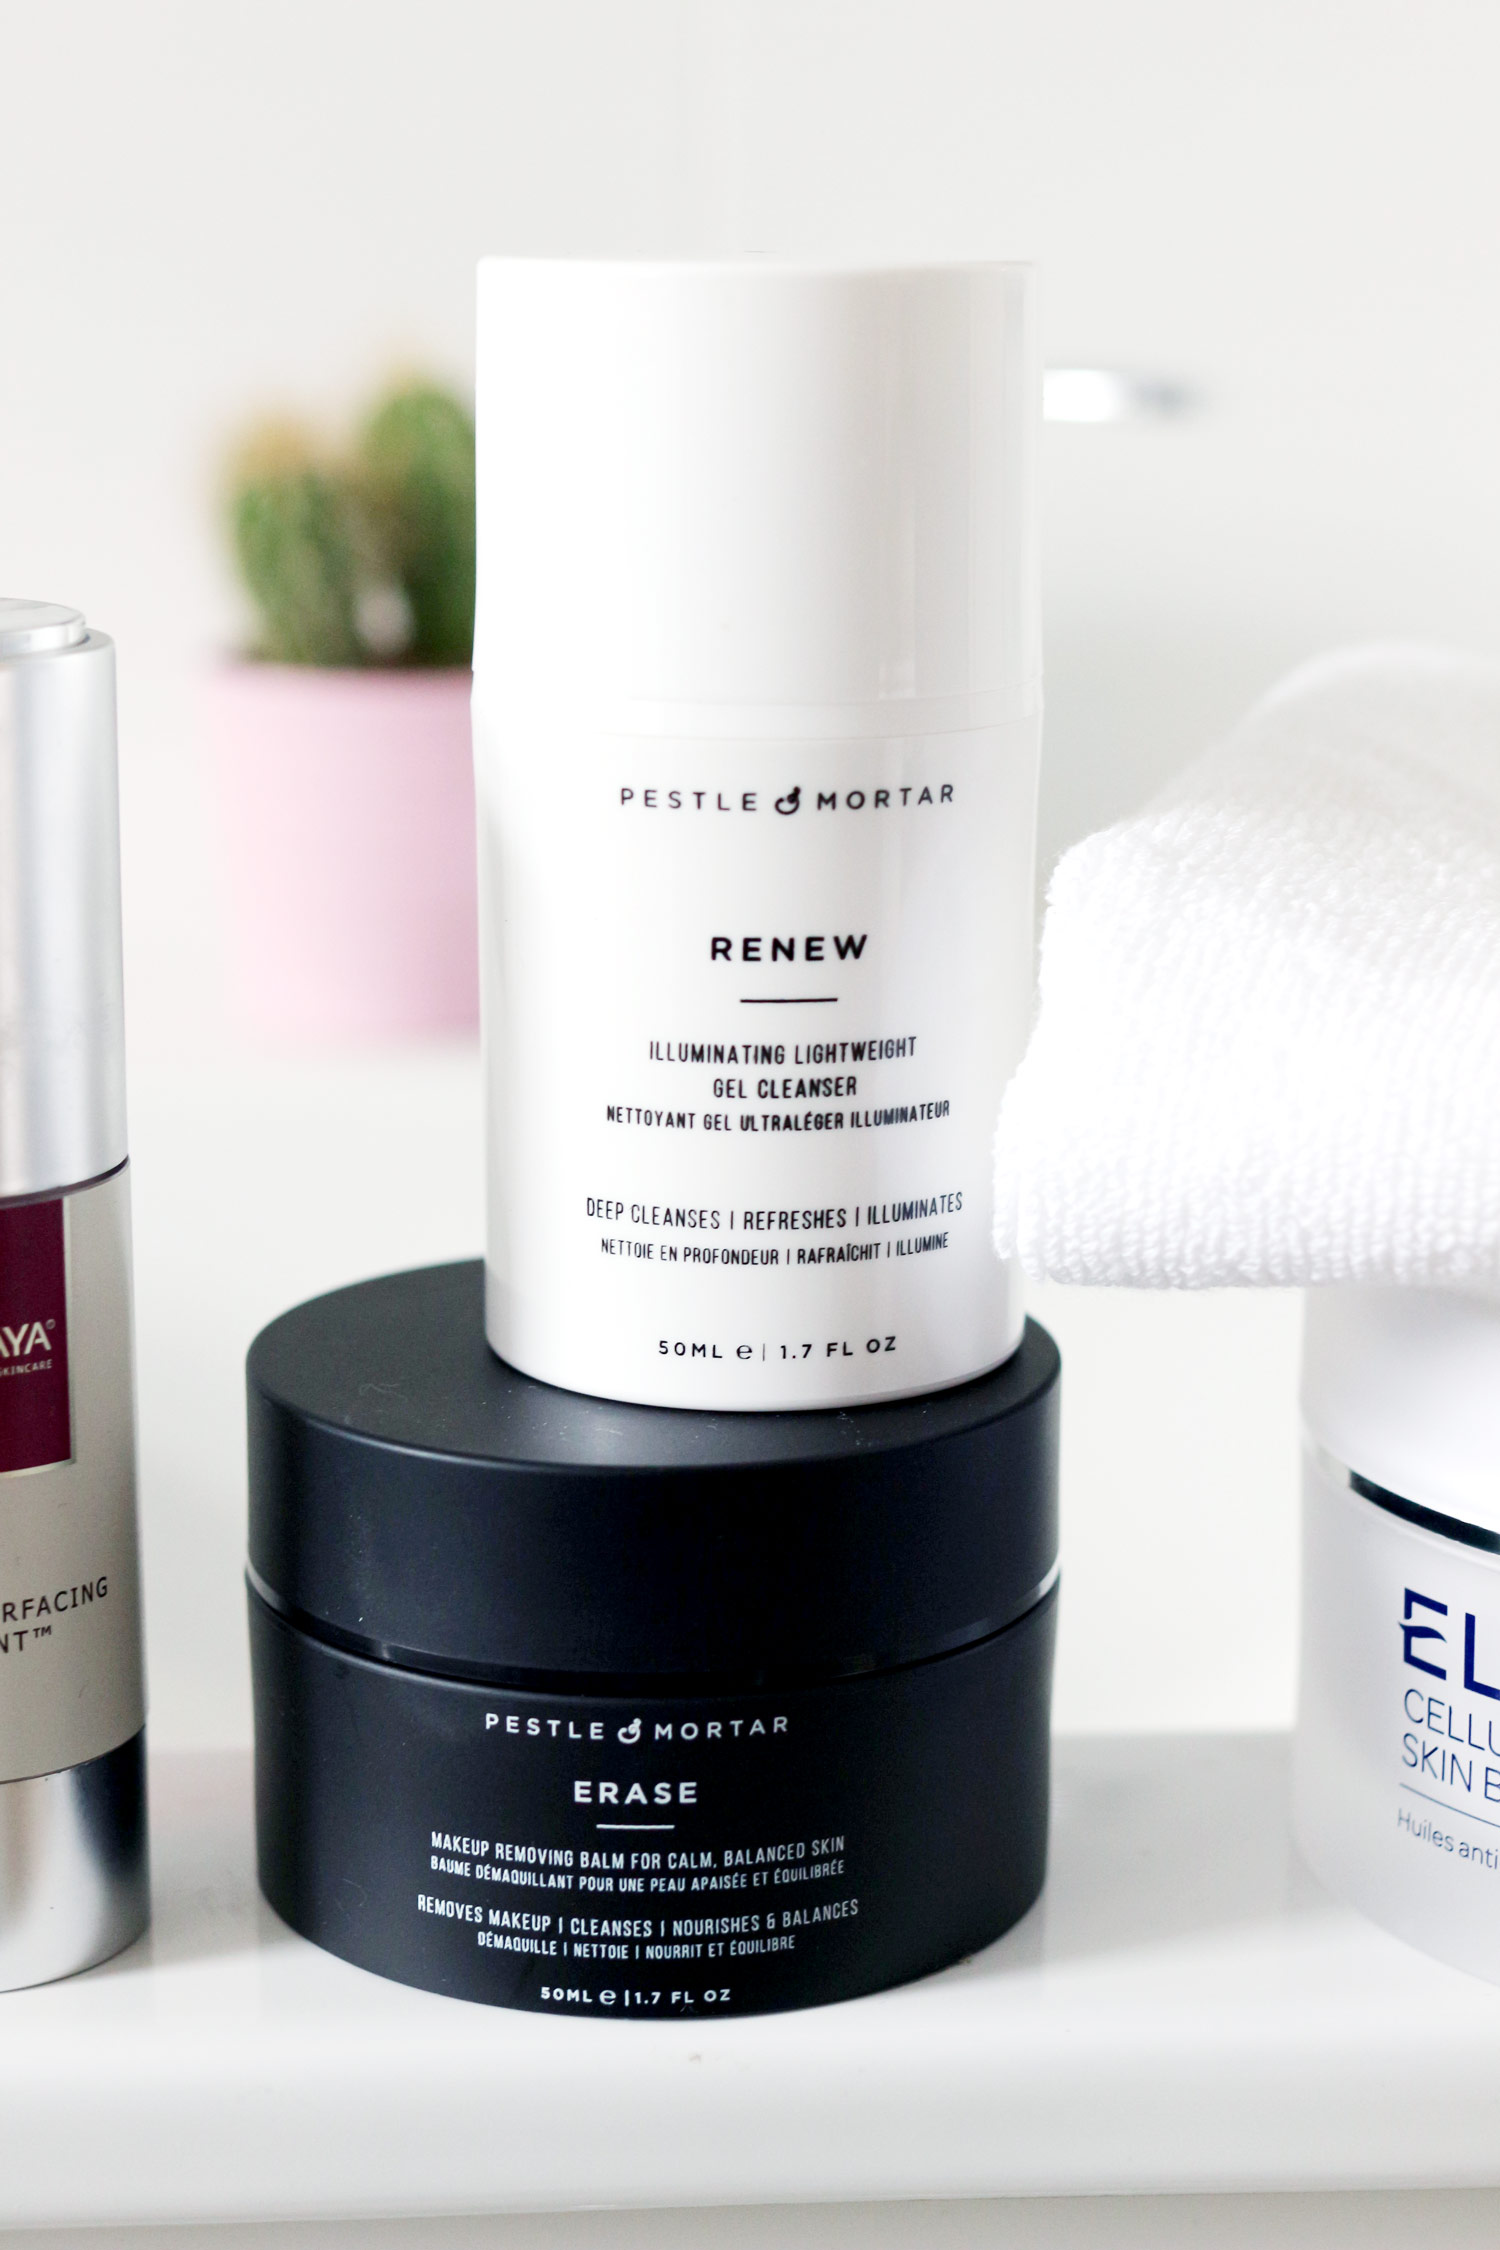 skincare-vichy-idealia-merumaya-retinol-pestle-and-mortar-cleanse-2